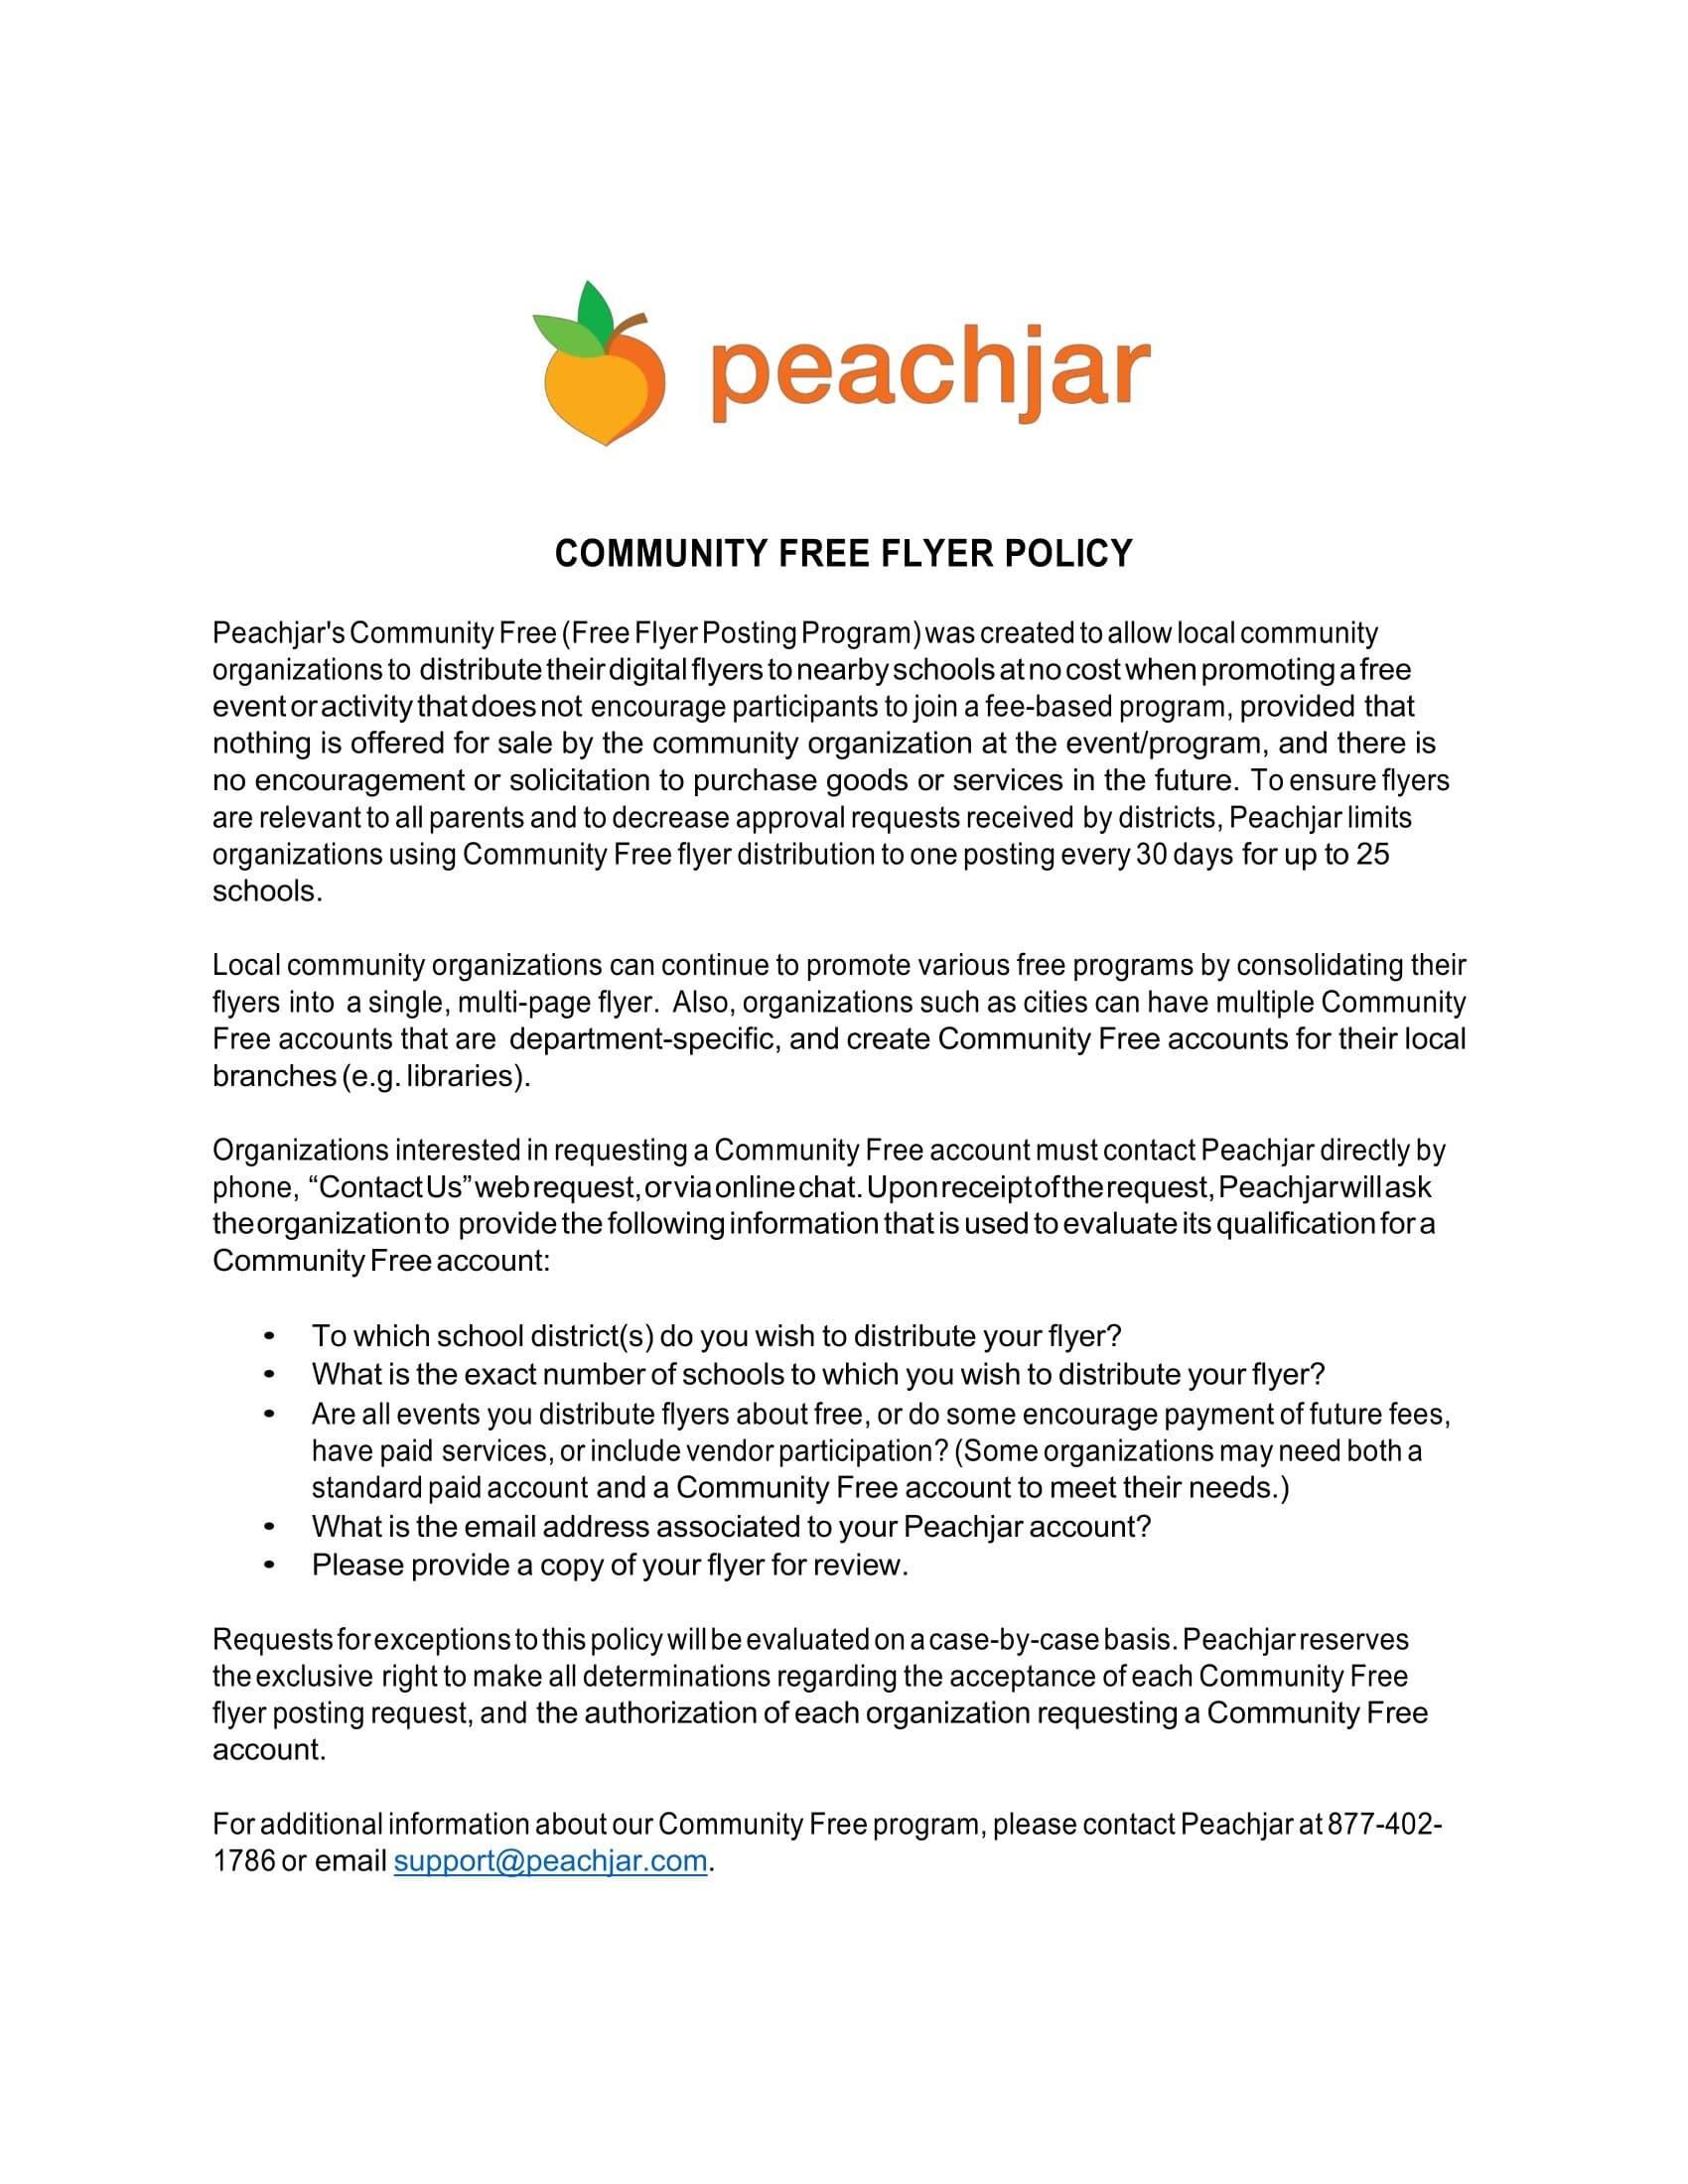 Community Free Flyer Policy